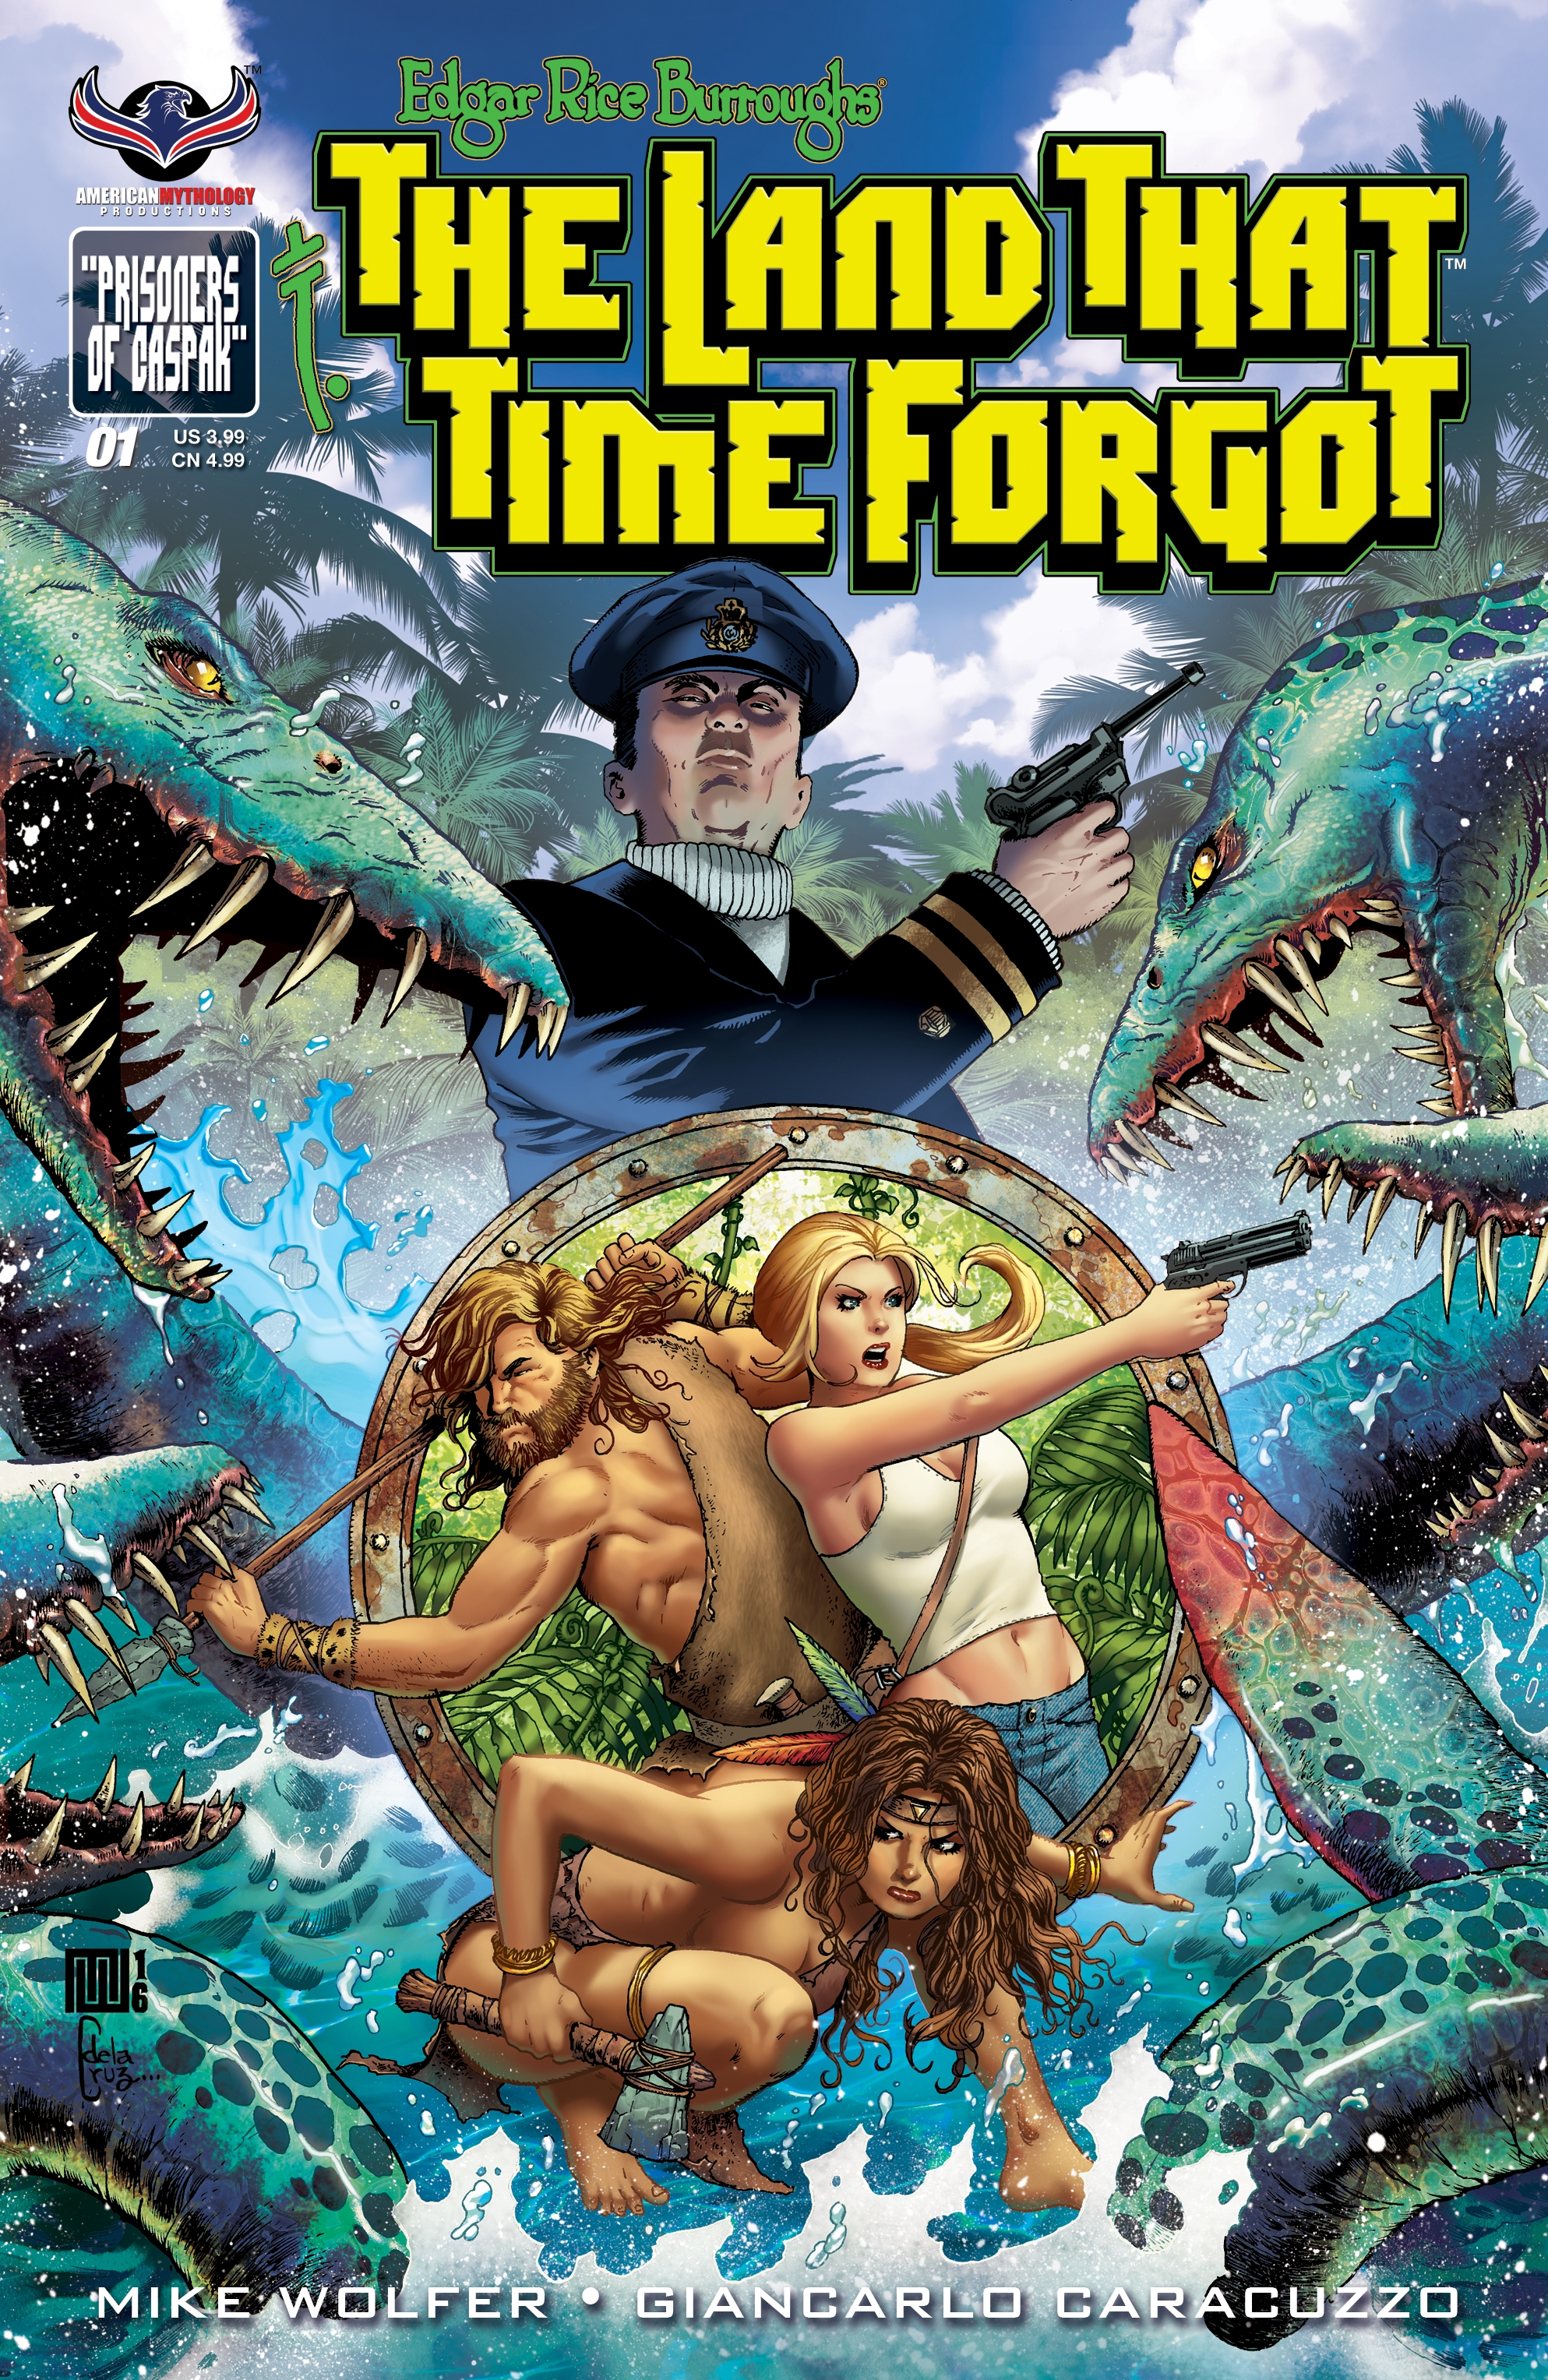 Edgar Rice Burroughs' Classic Tale - The Land That Time Forgot - Returns in a Brand New Comic Book Series